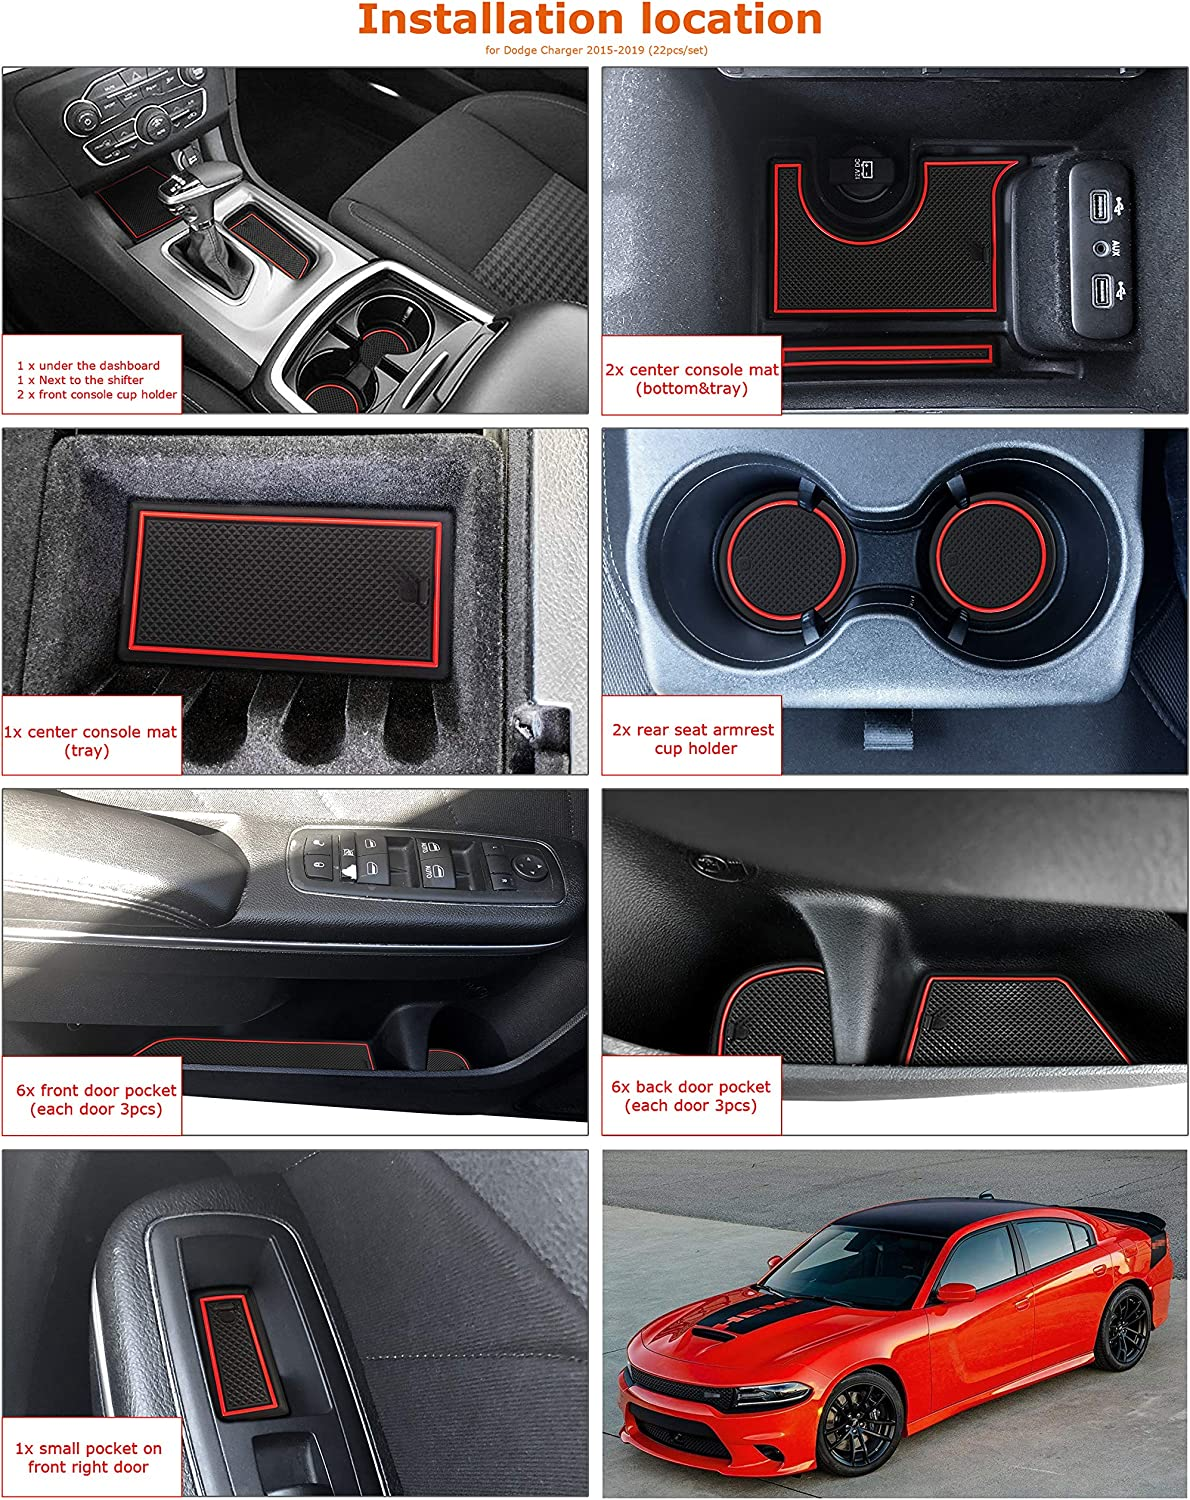 Auovo Anti dust Mats for Dodge Charger 2015 2016 2017 2018 2019 2020 Accessories Custom Fit Door Pocket Liners Cup Holder Pads Console Mats Orange 22pcs//Set